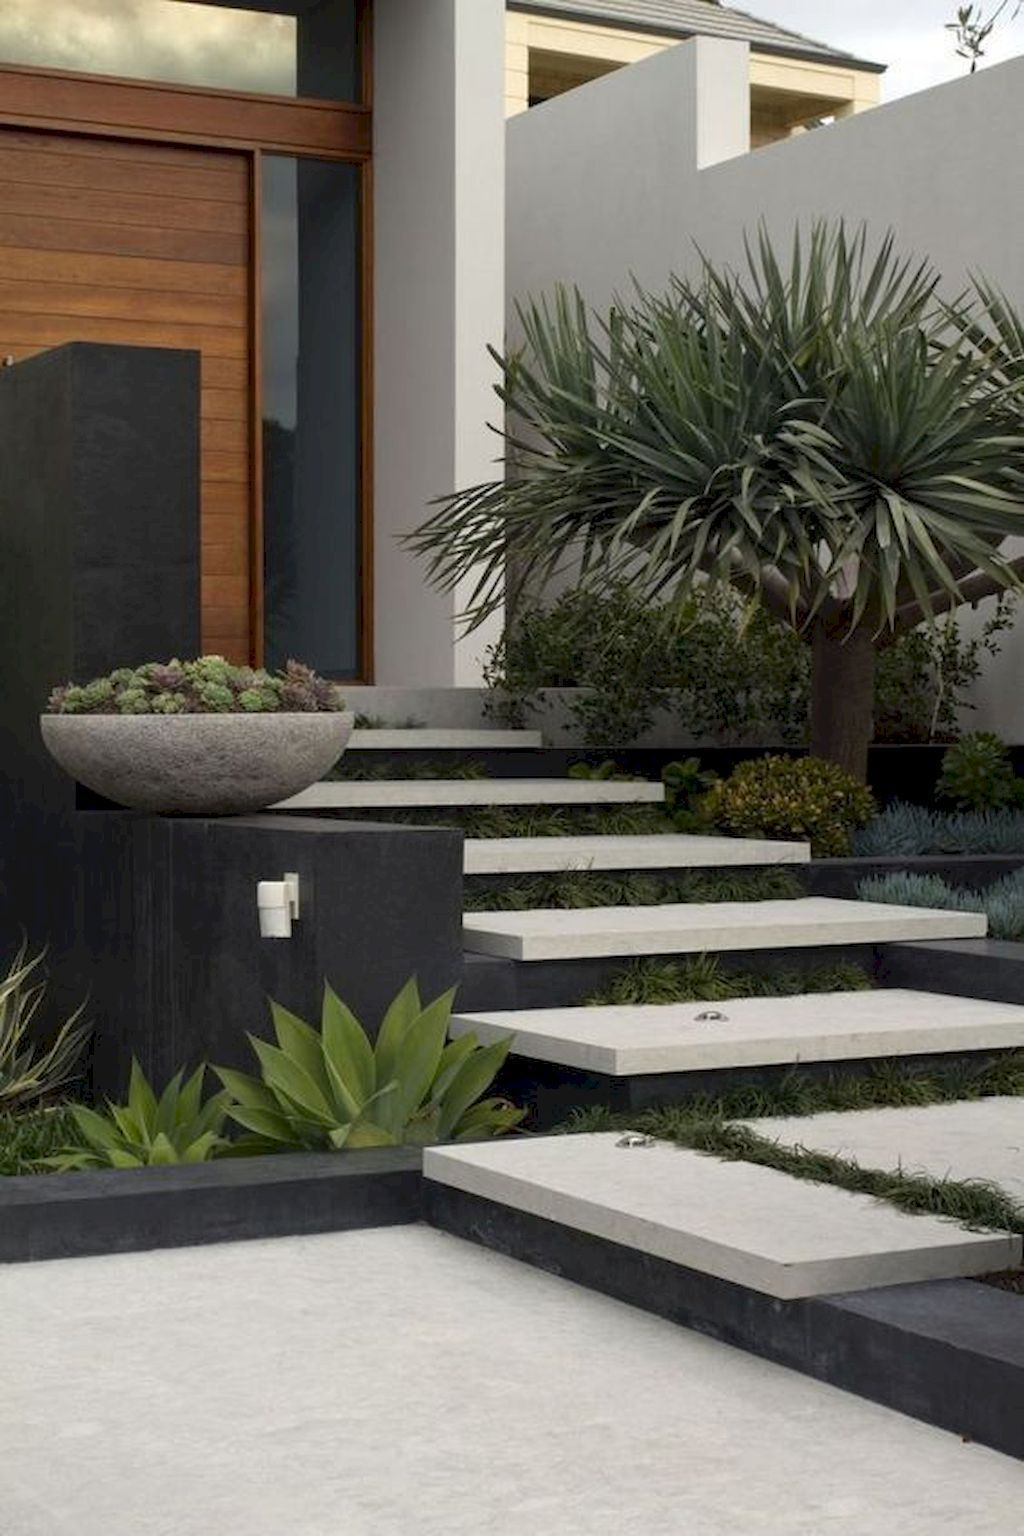 36 Elegant Front Yard Landscaping Ideas On A Budget To Have Now